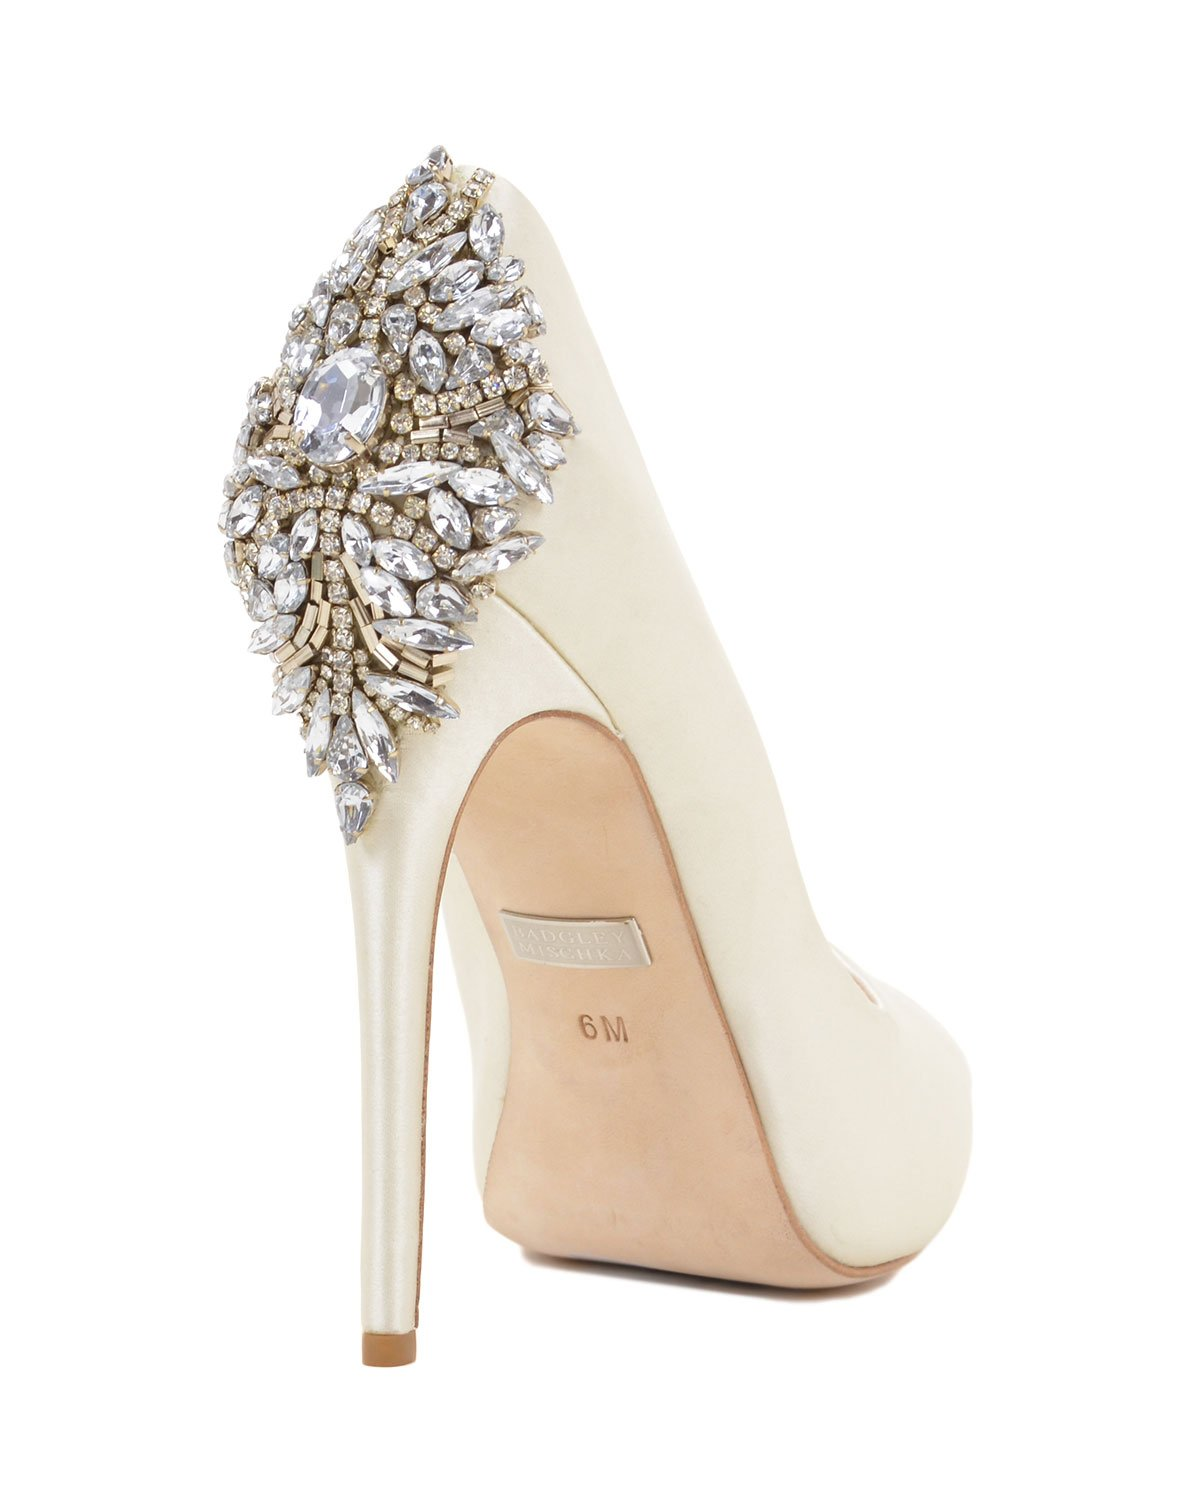 Badgley Mischka Australia - Kiara - Wedding Shoes Sydney